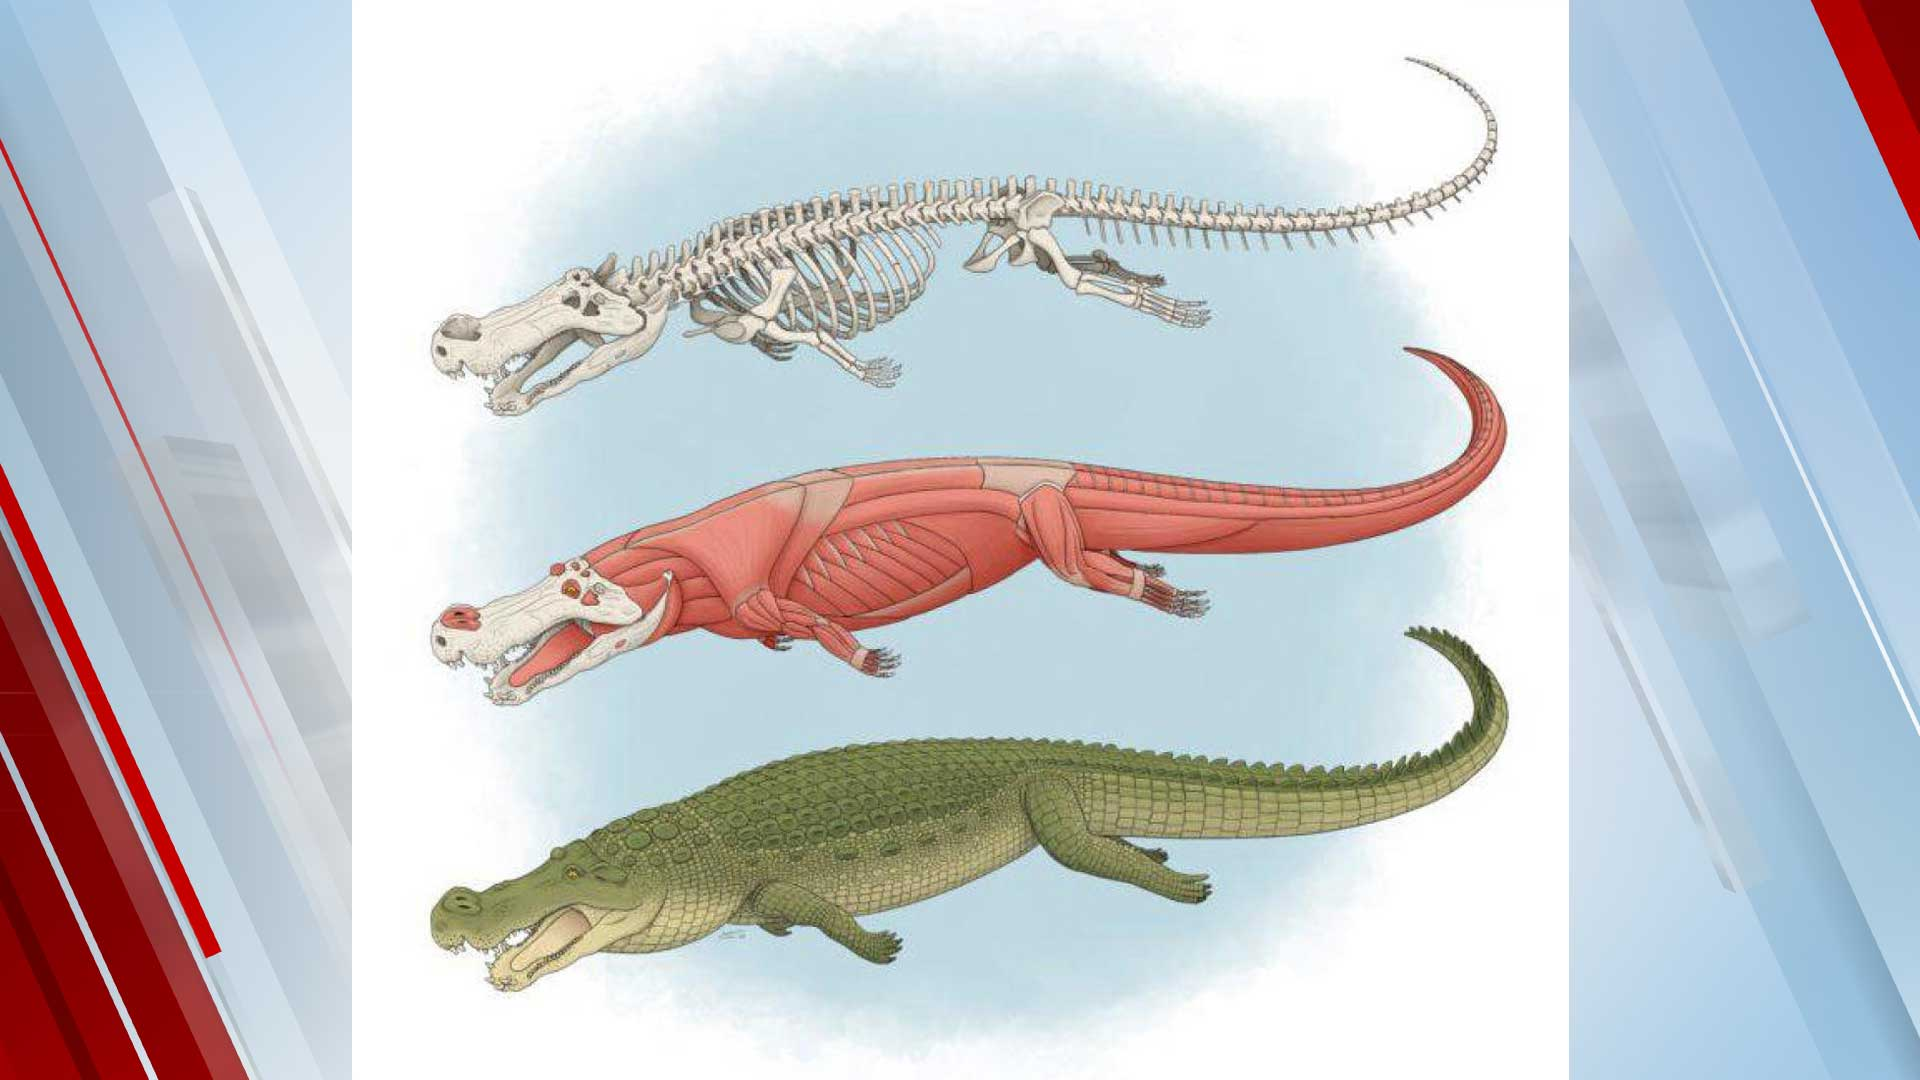 Ancient 'Terror Crocodiles' Used Banana-Sized Teeth To Eat Everything In Sight, Even Dinosaurs